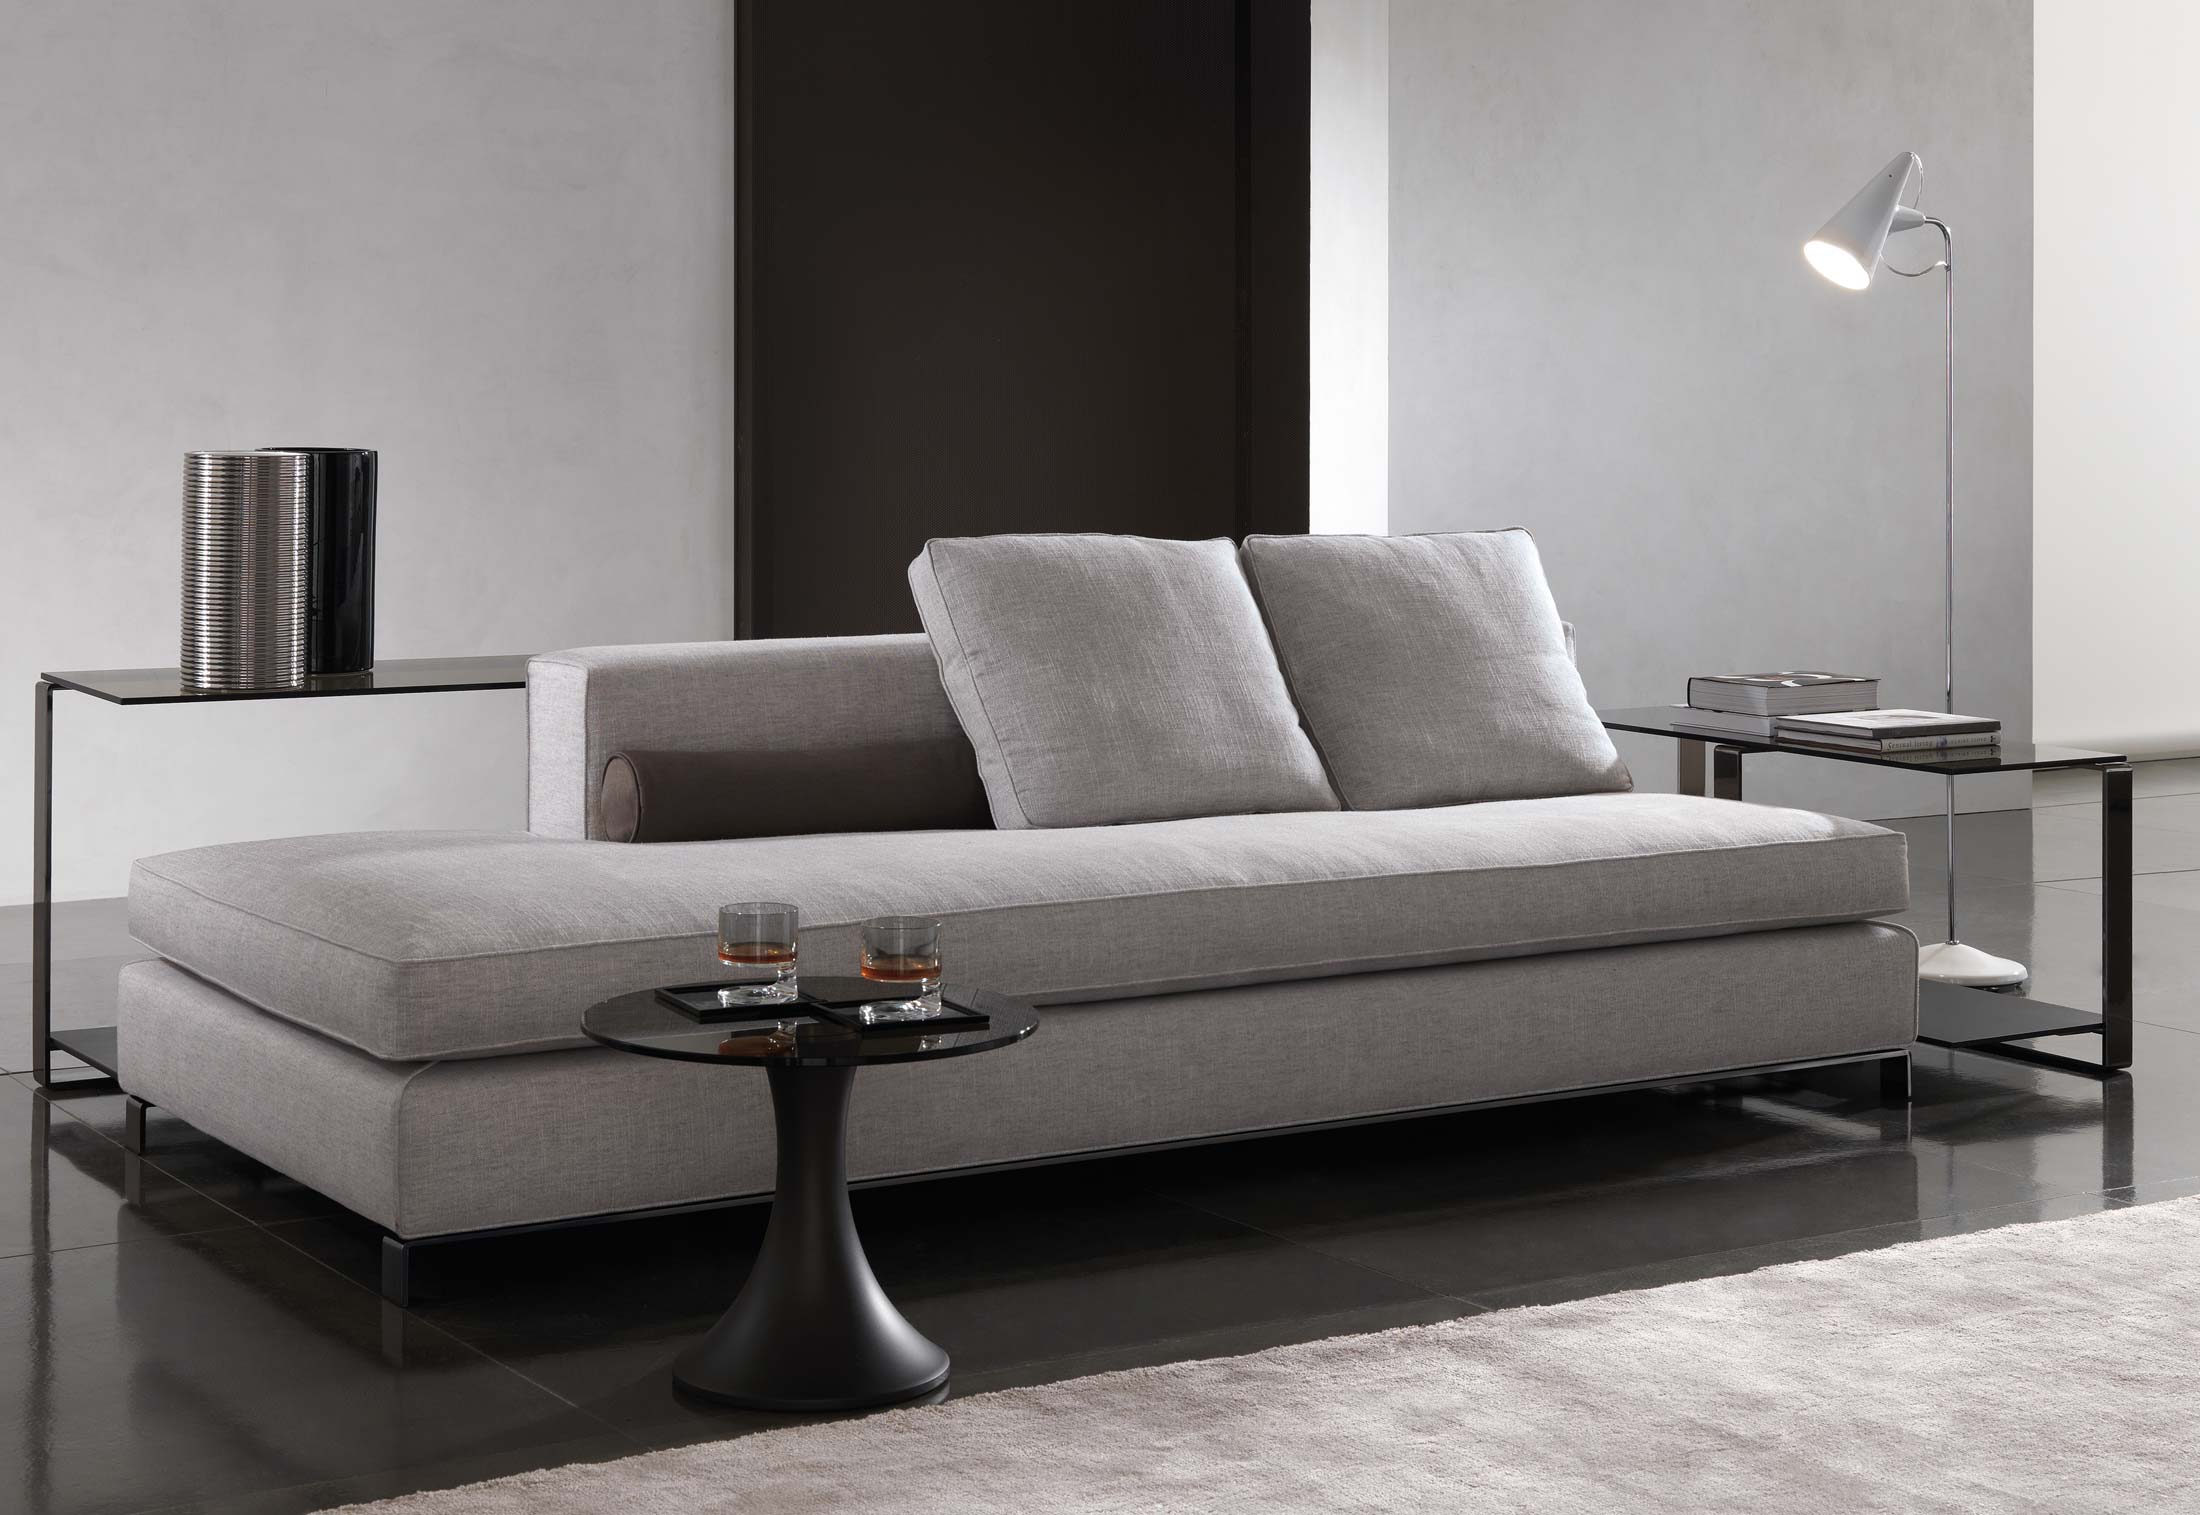 Minotti williams sofa williams by minotti stylepark thesofa Sofa minotti preise